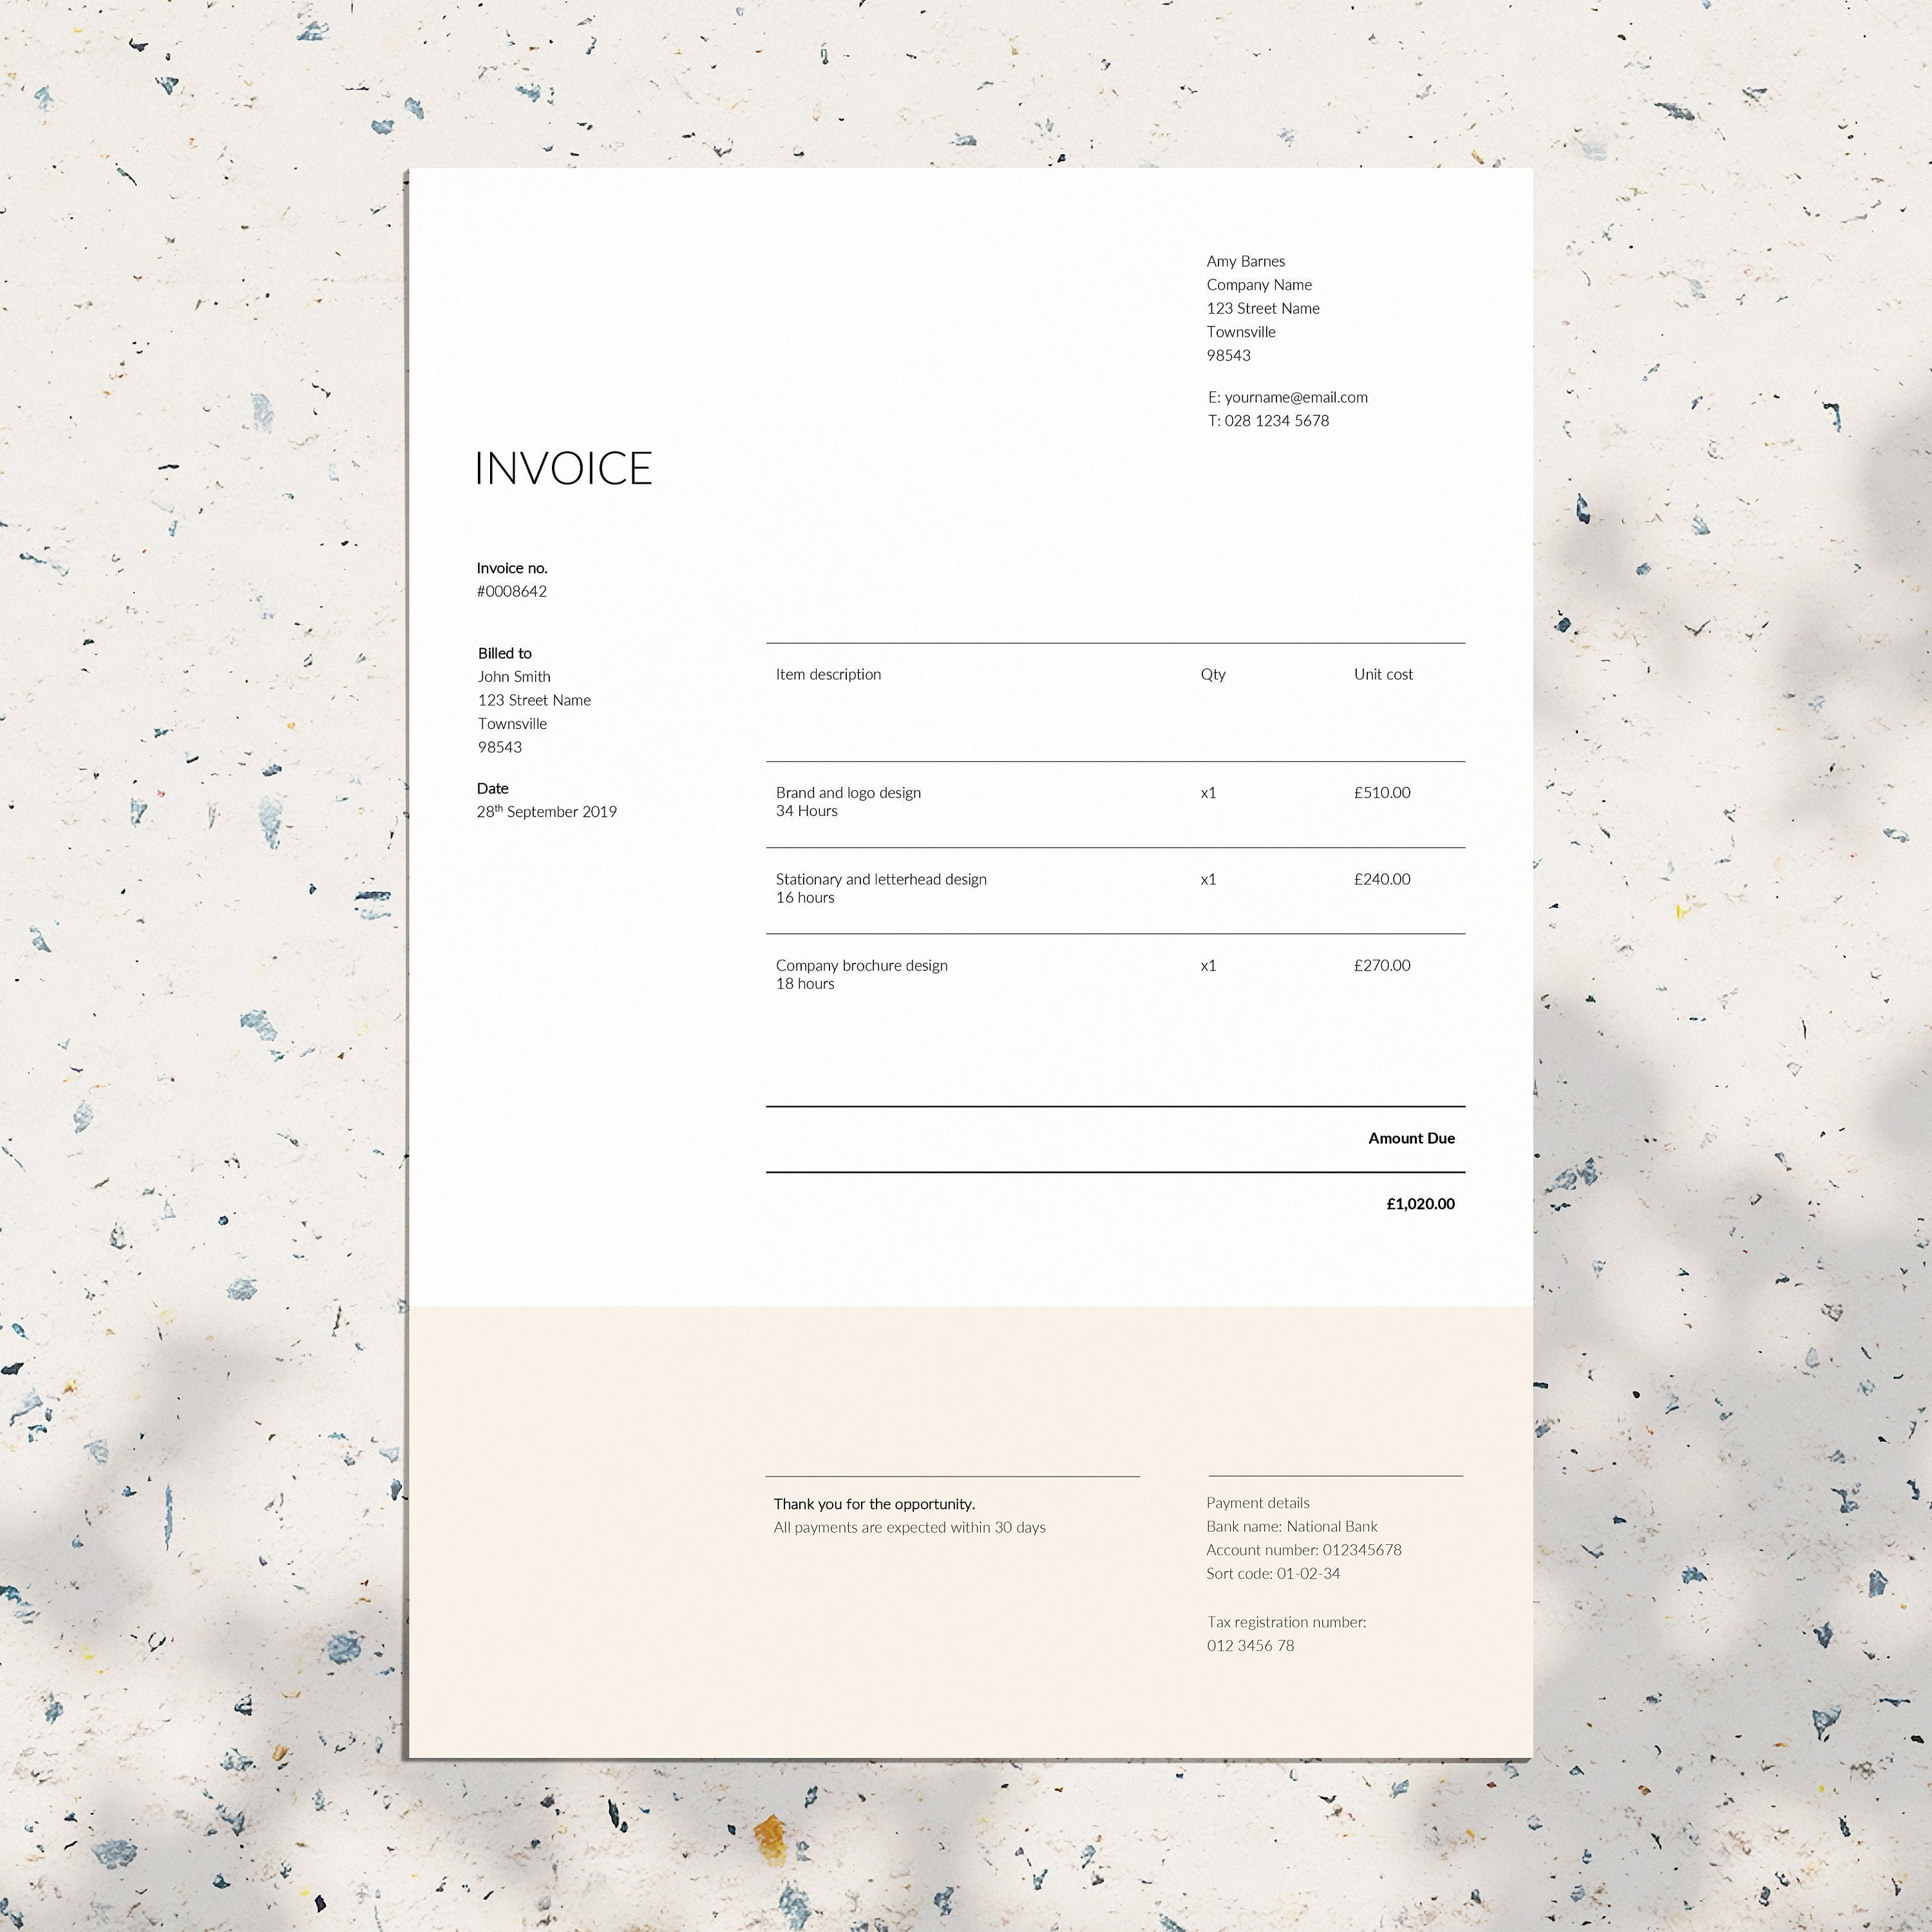 Invoice Template Business Invoice Ms Word Invoice Design Etsy